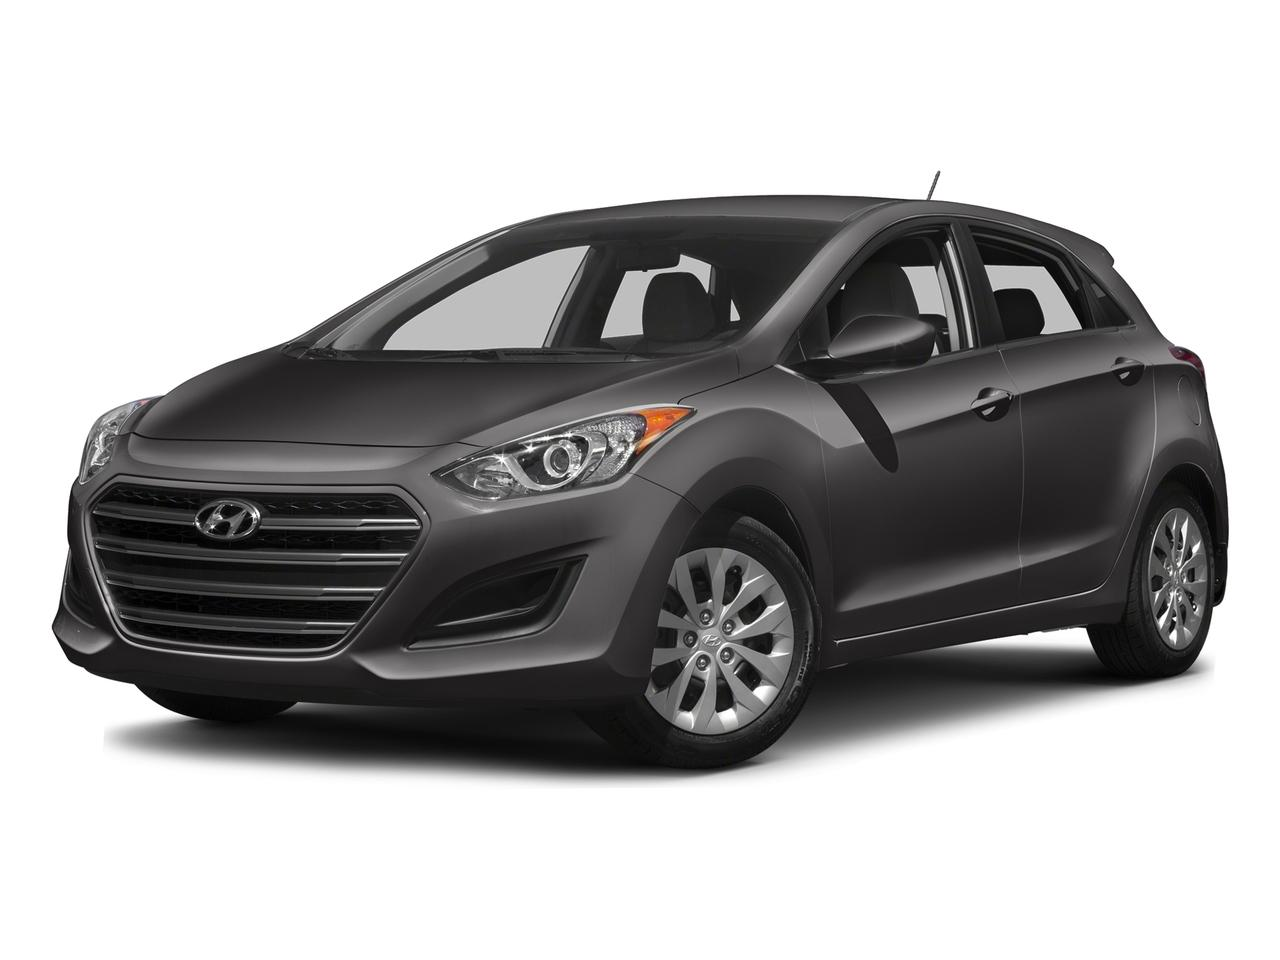 2016 Hyundai Elantra GT Vehicle Photo in Pittsburgh, PA 15226